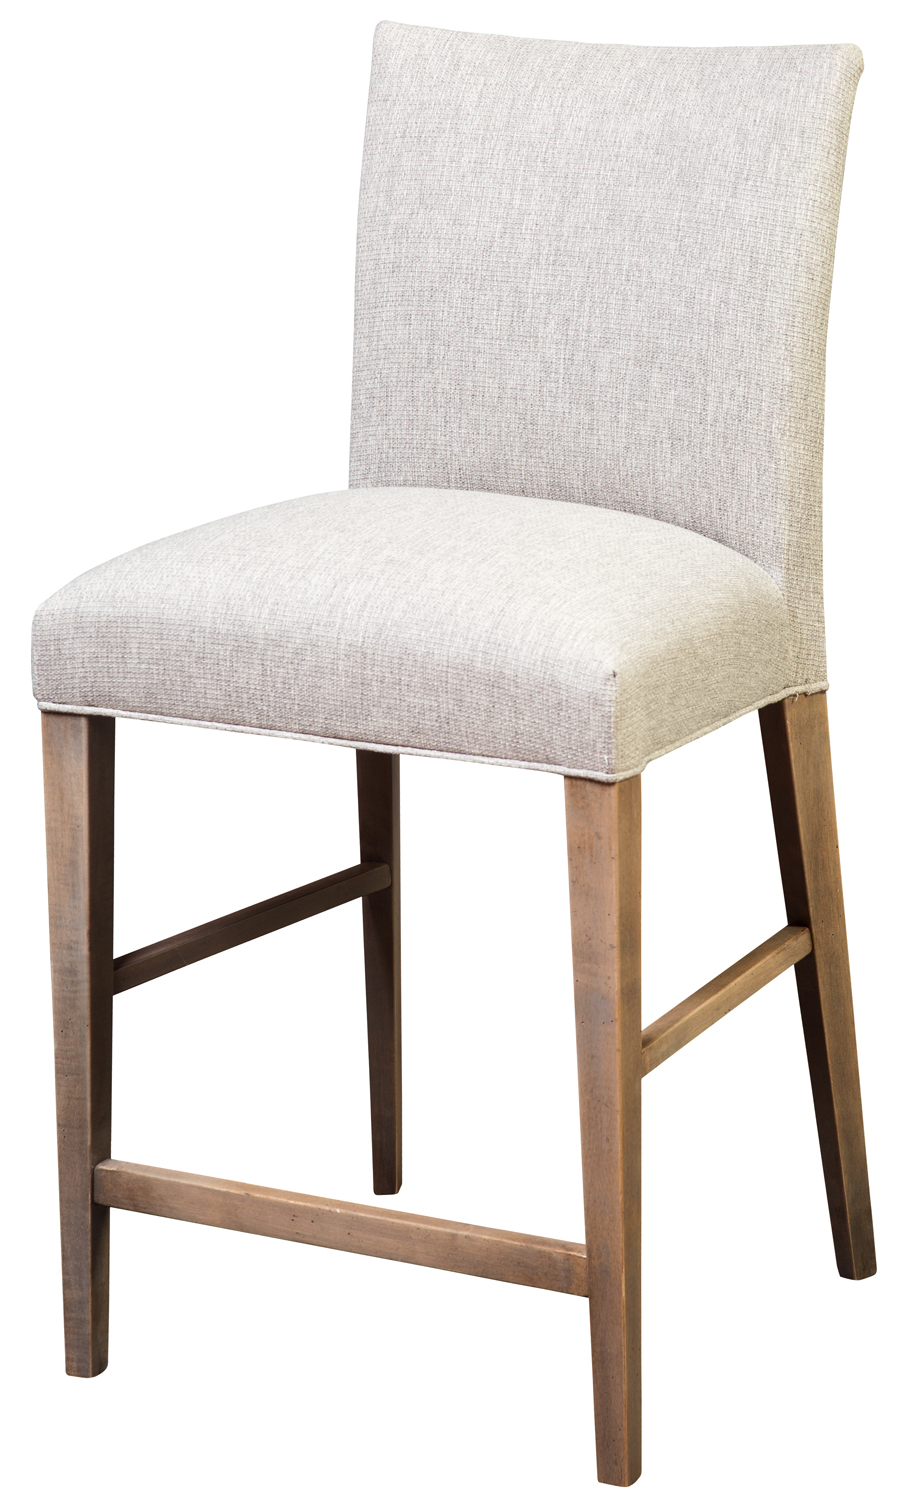 Fairfield Stool Image